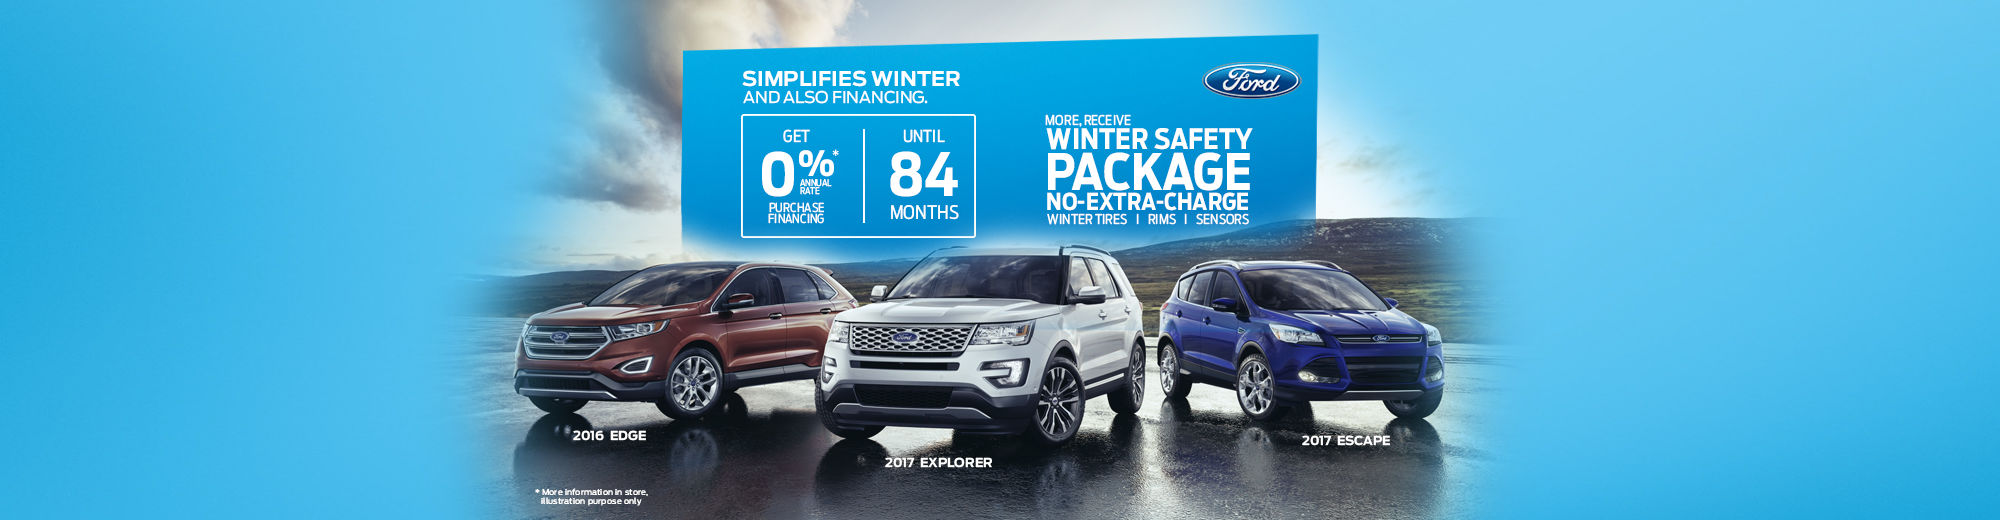 Simplifies winter and also financing.